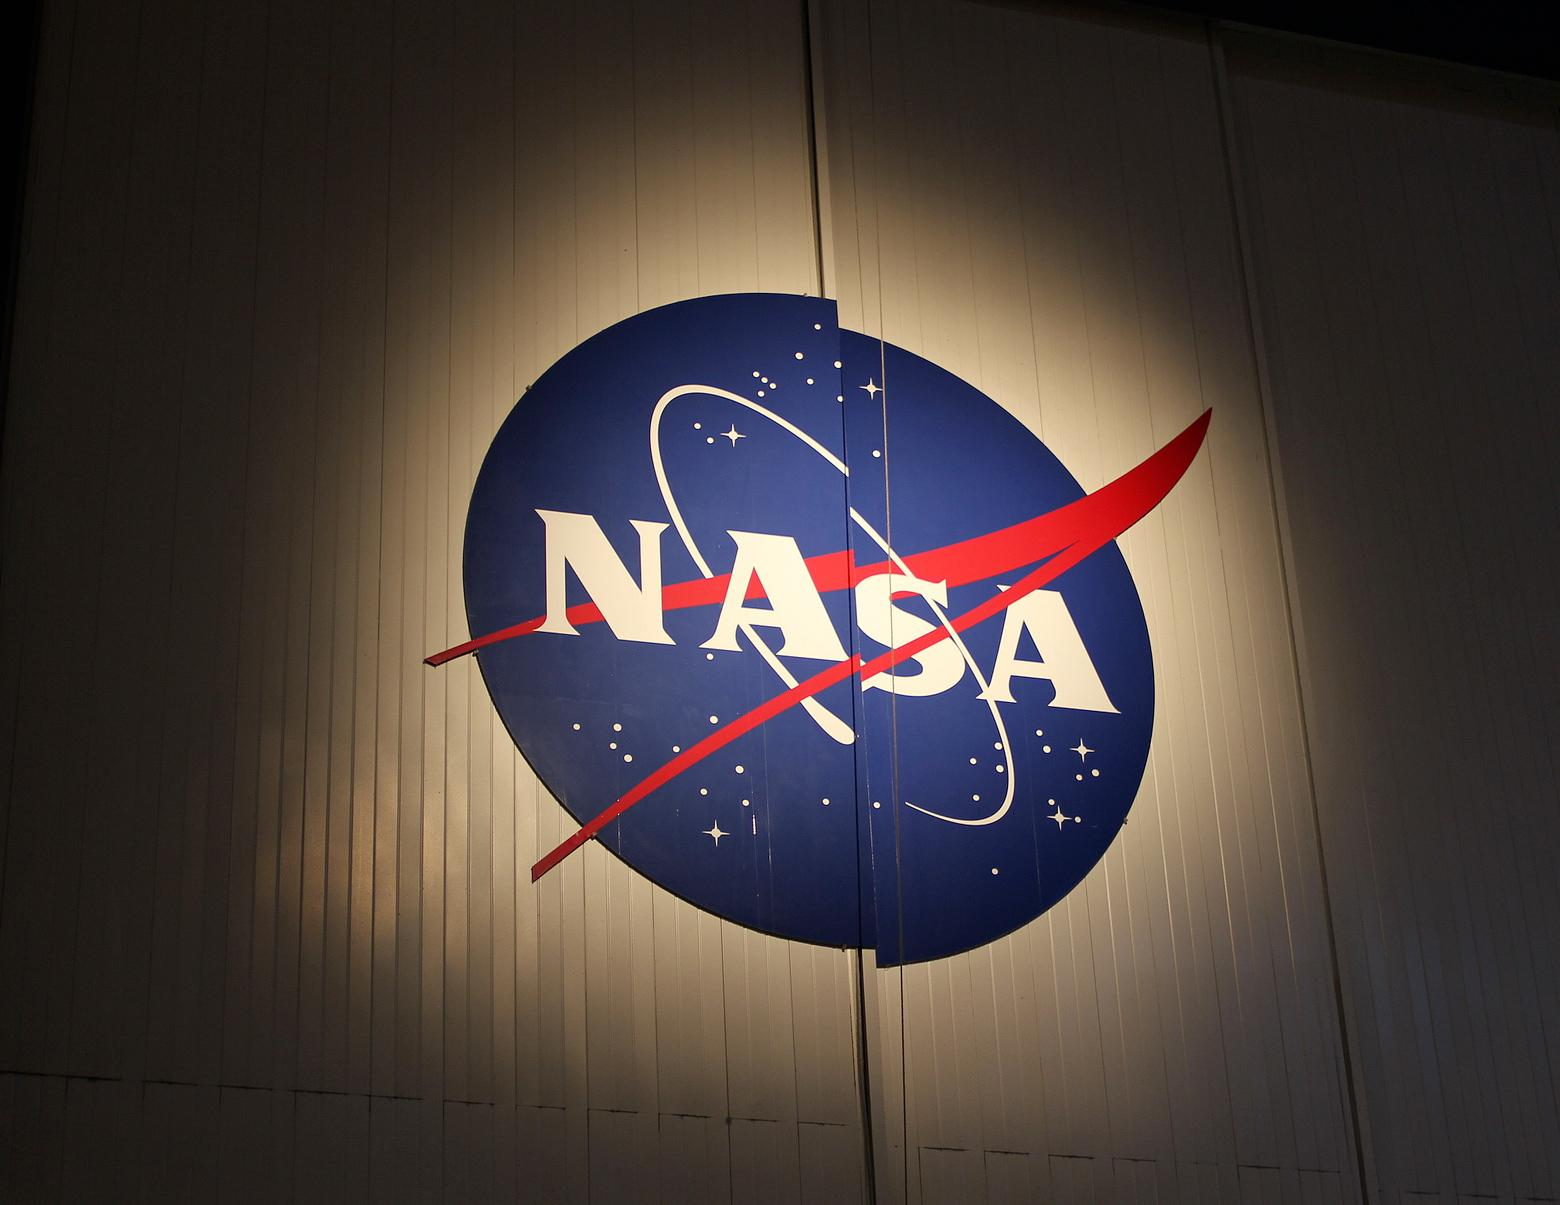 nasa channel on direct tv - HD1560×1205